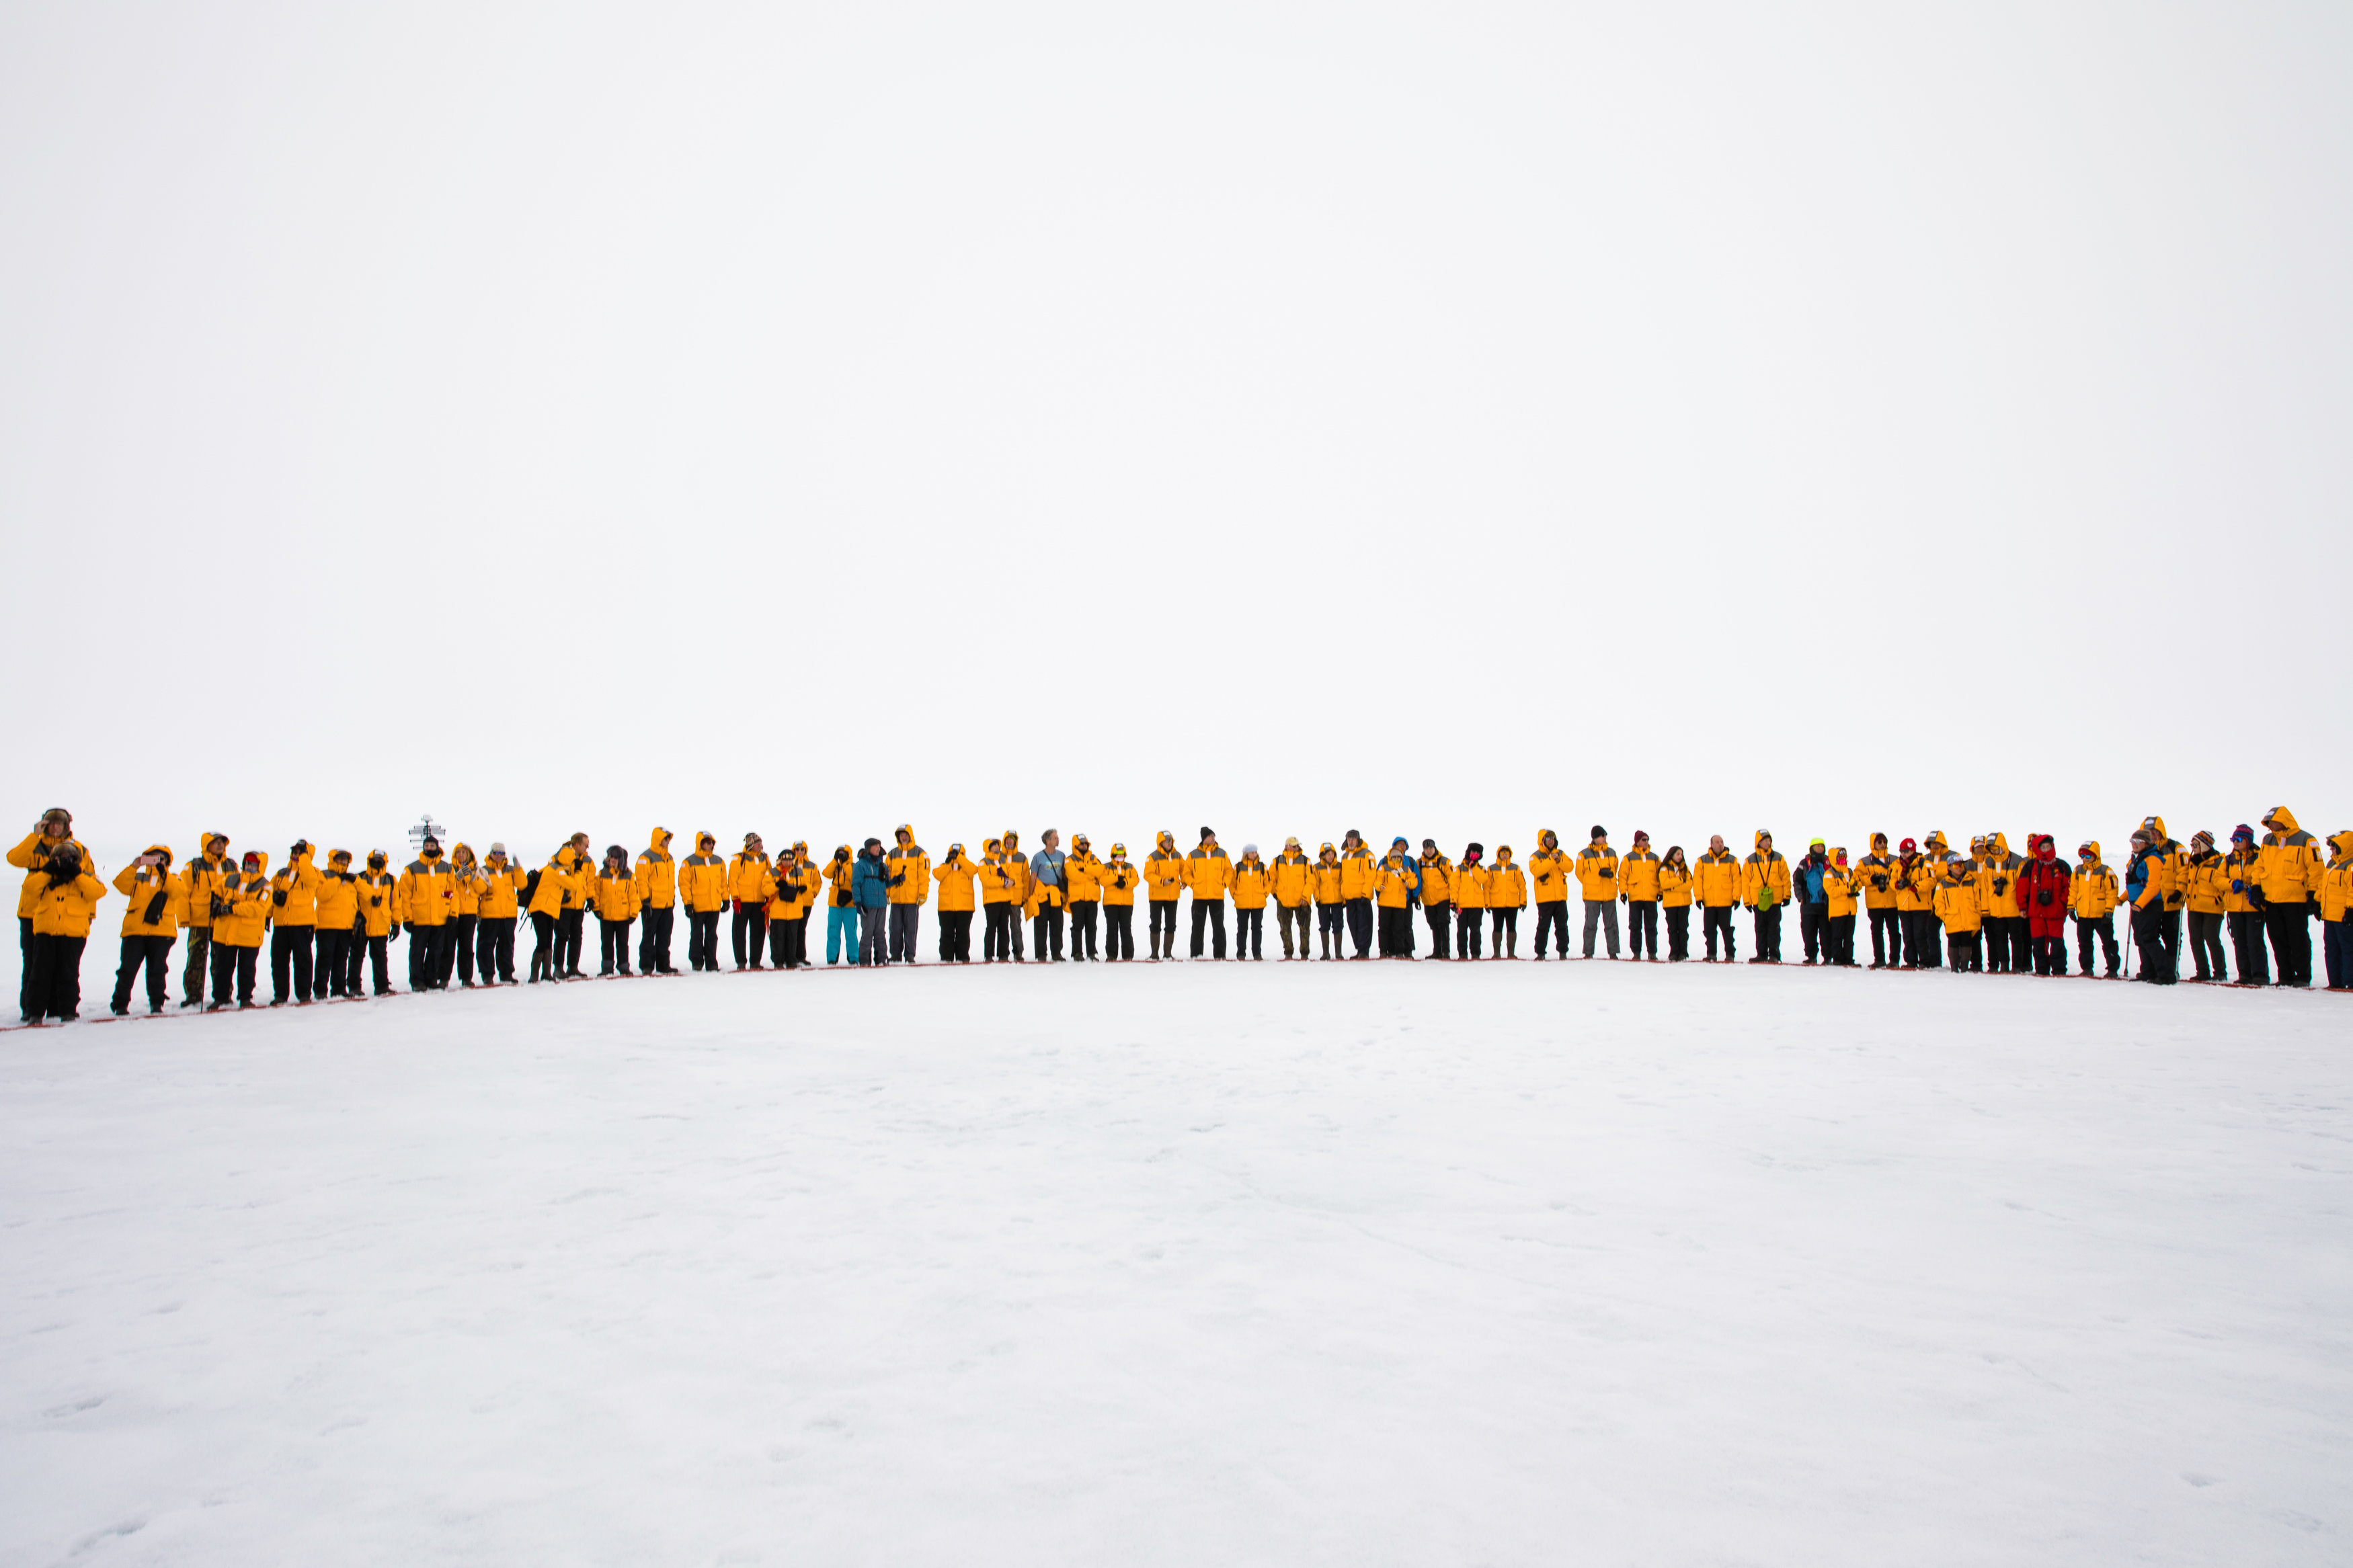 North Pole passengers standing together for the Circle Ceremony near the North Pole. Photo: Dani Plumb